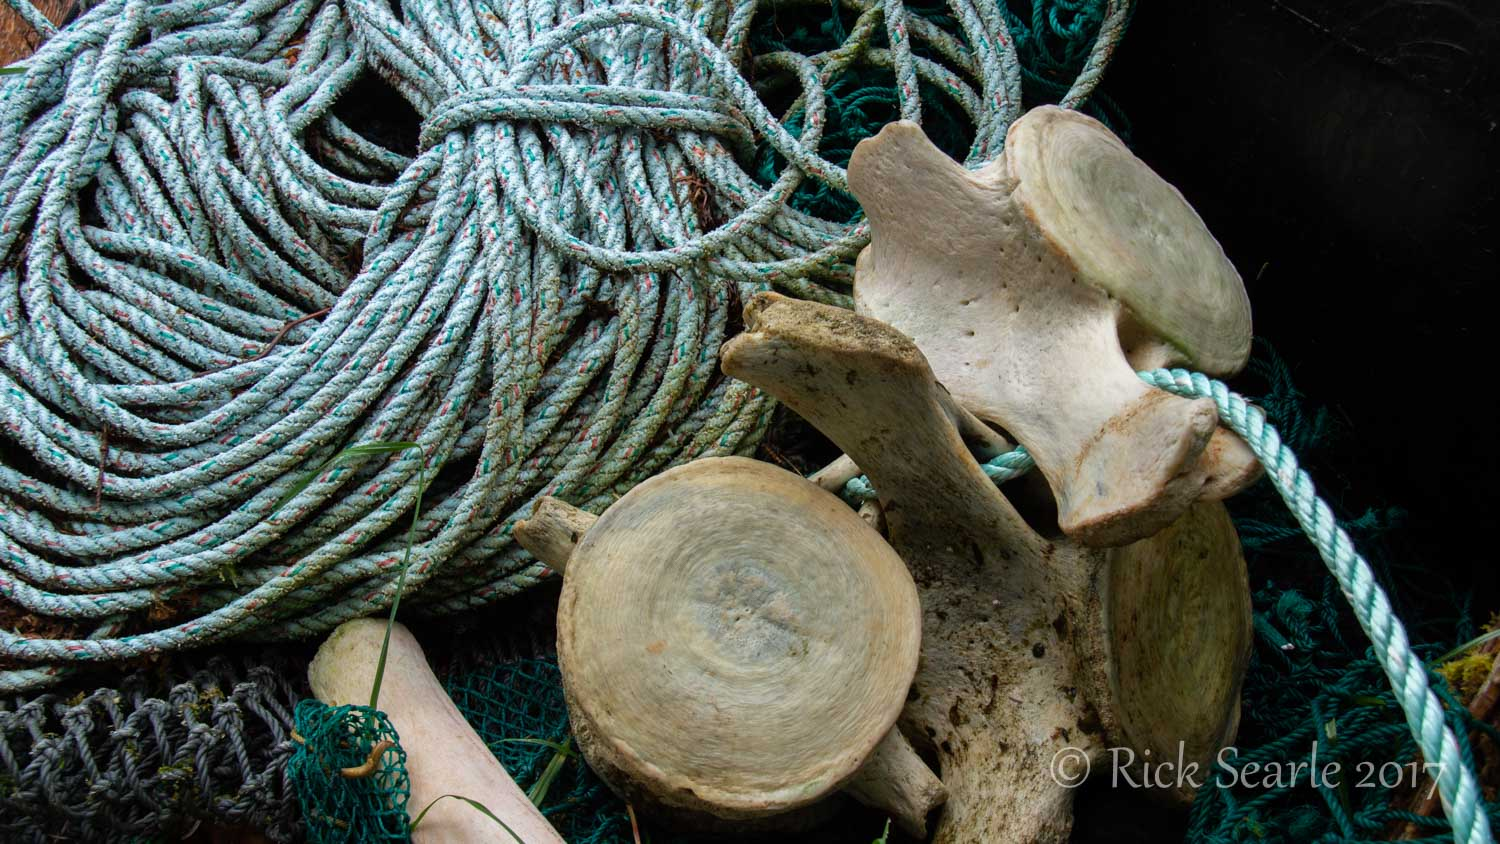 Rose Harbour Whale Bones and Rope